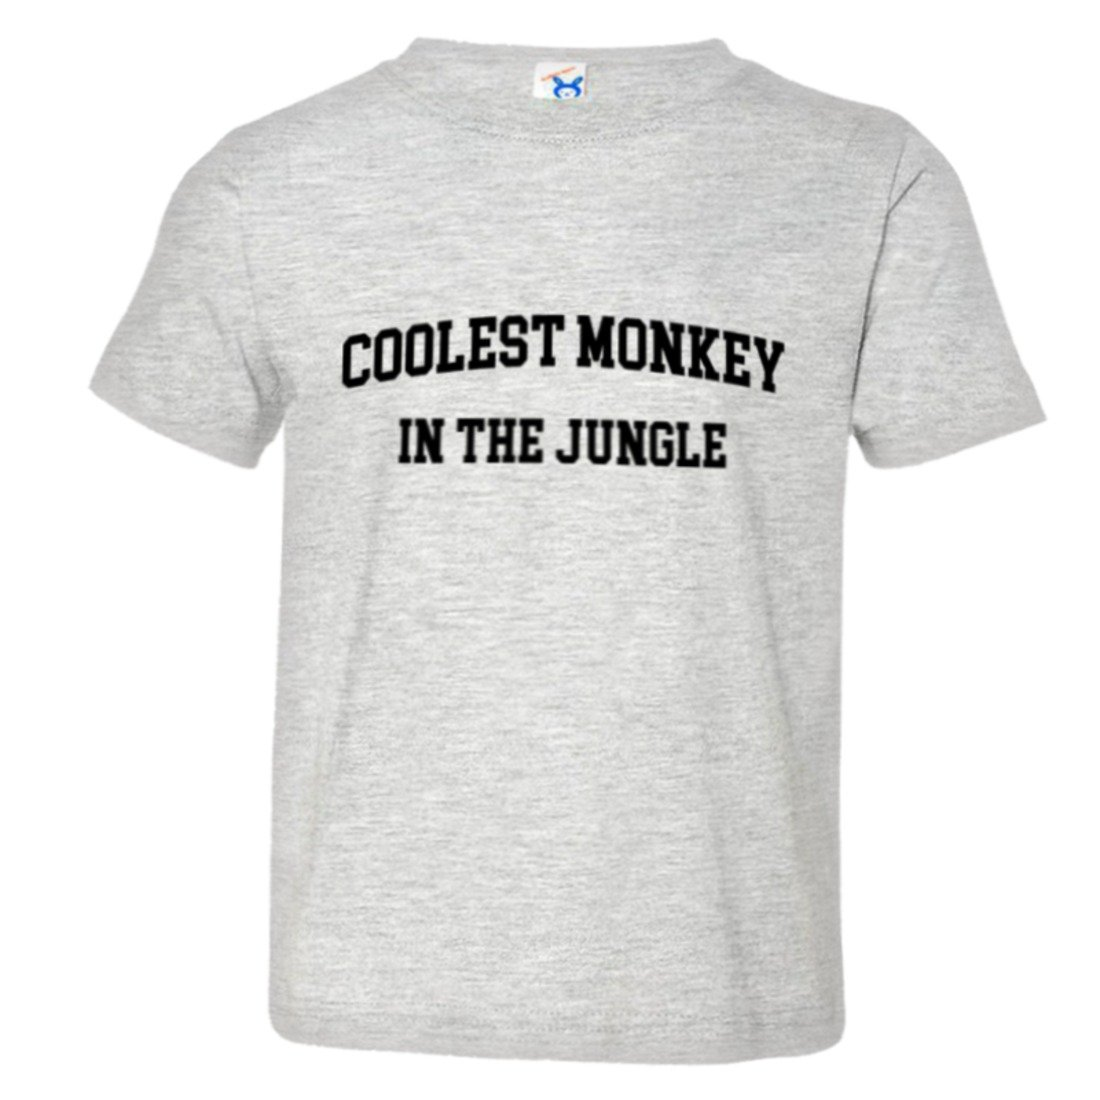 Toddler Classic Coolest Monkey in The Jungle Funny HQ Tee Shirt